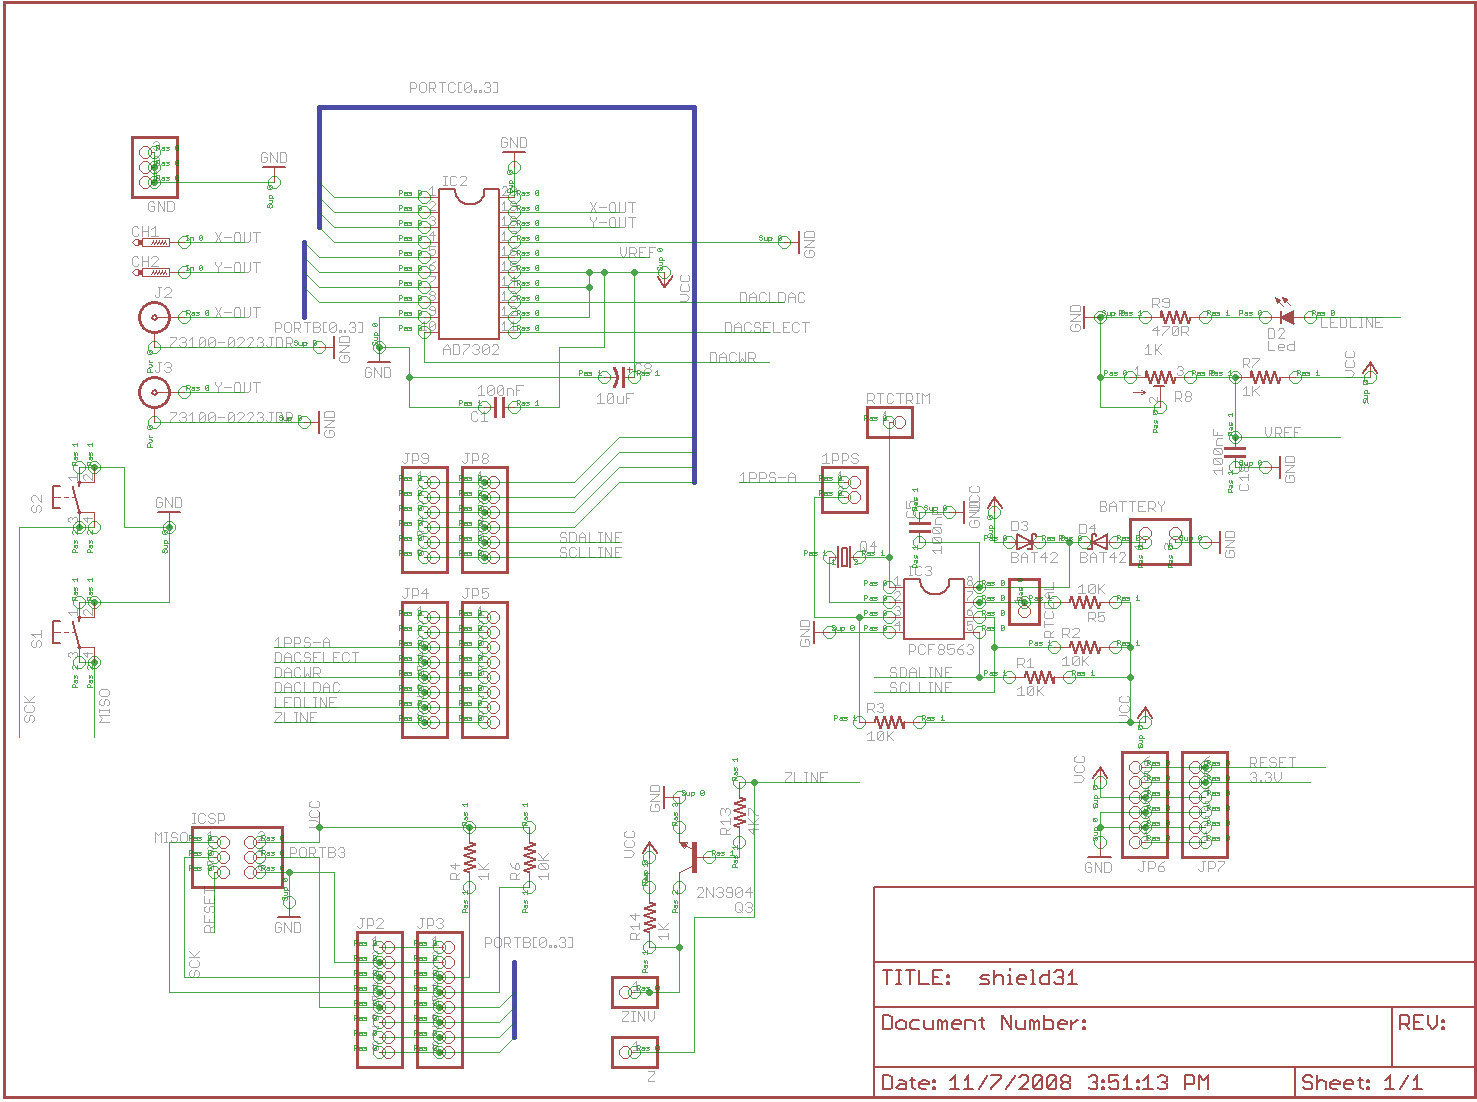 Here are the Schematics and PCB Design Images: